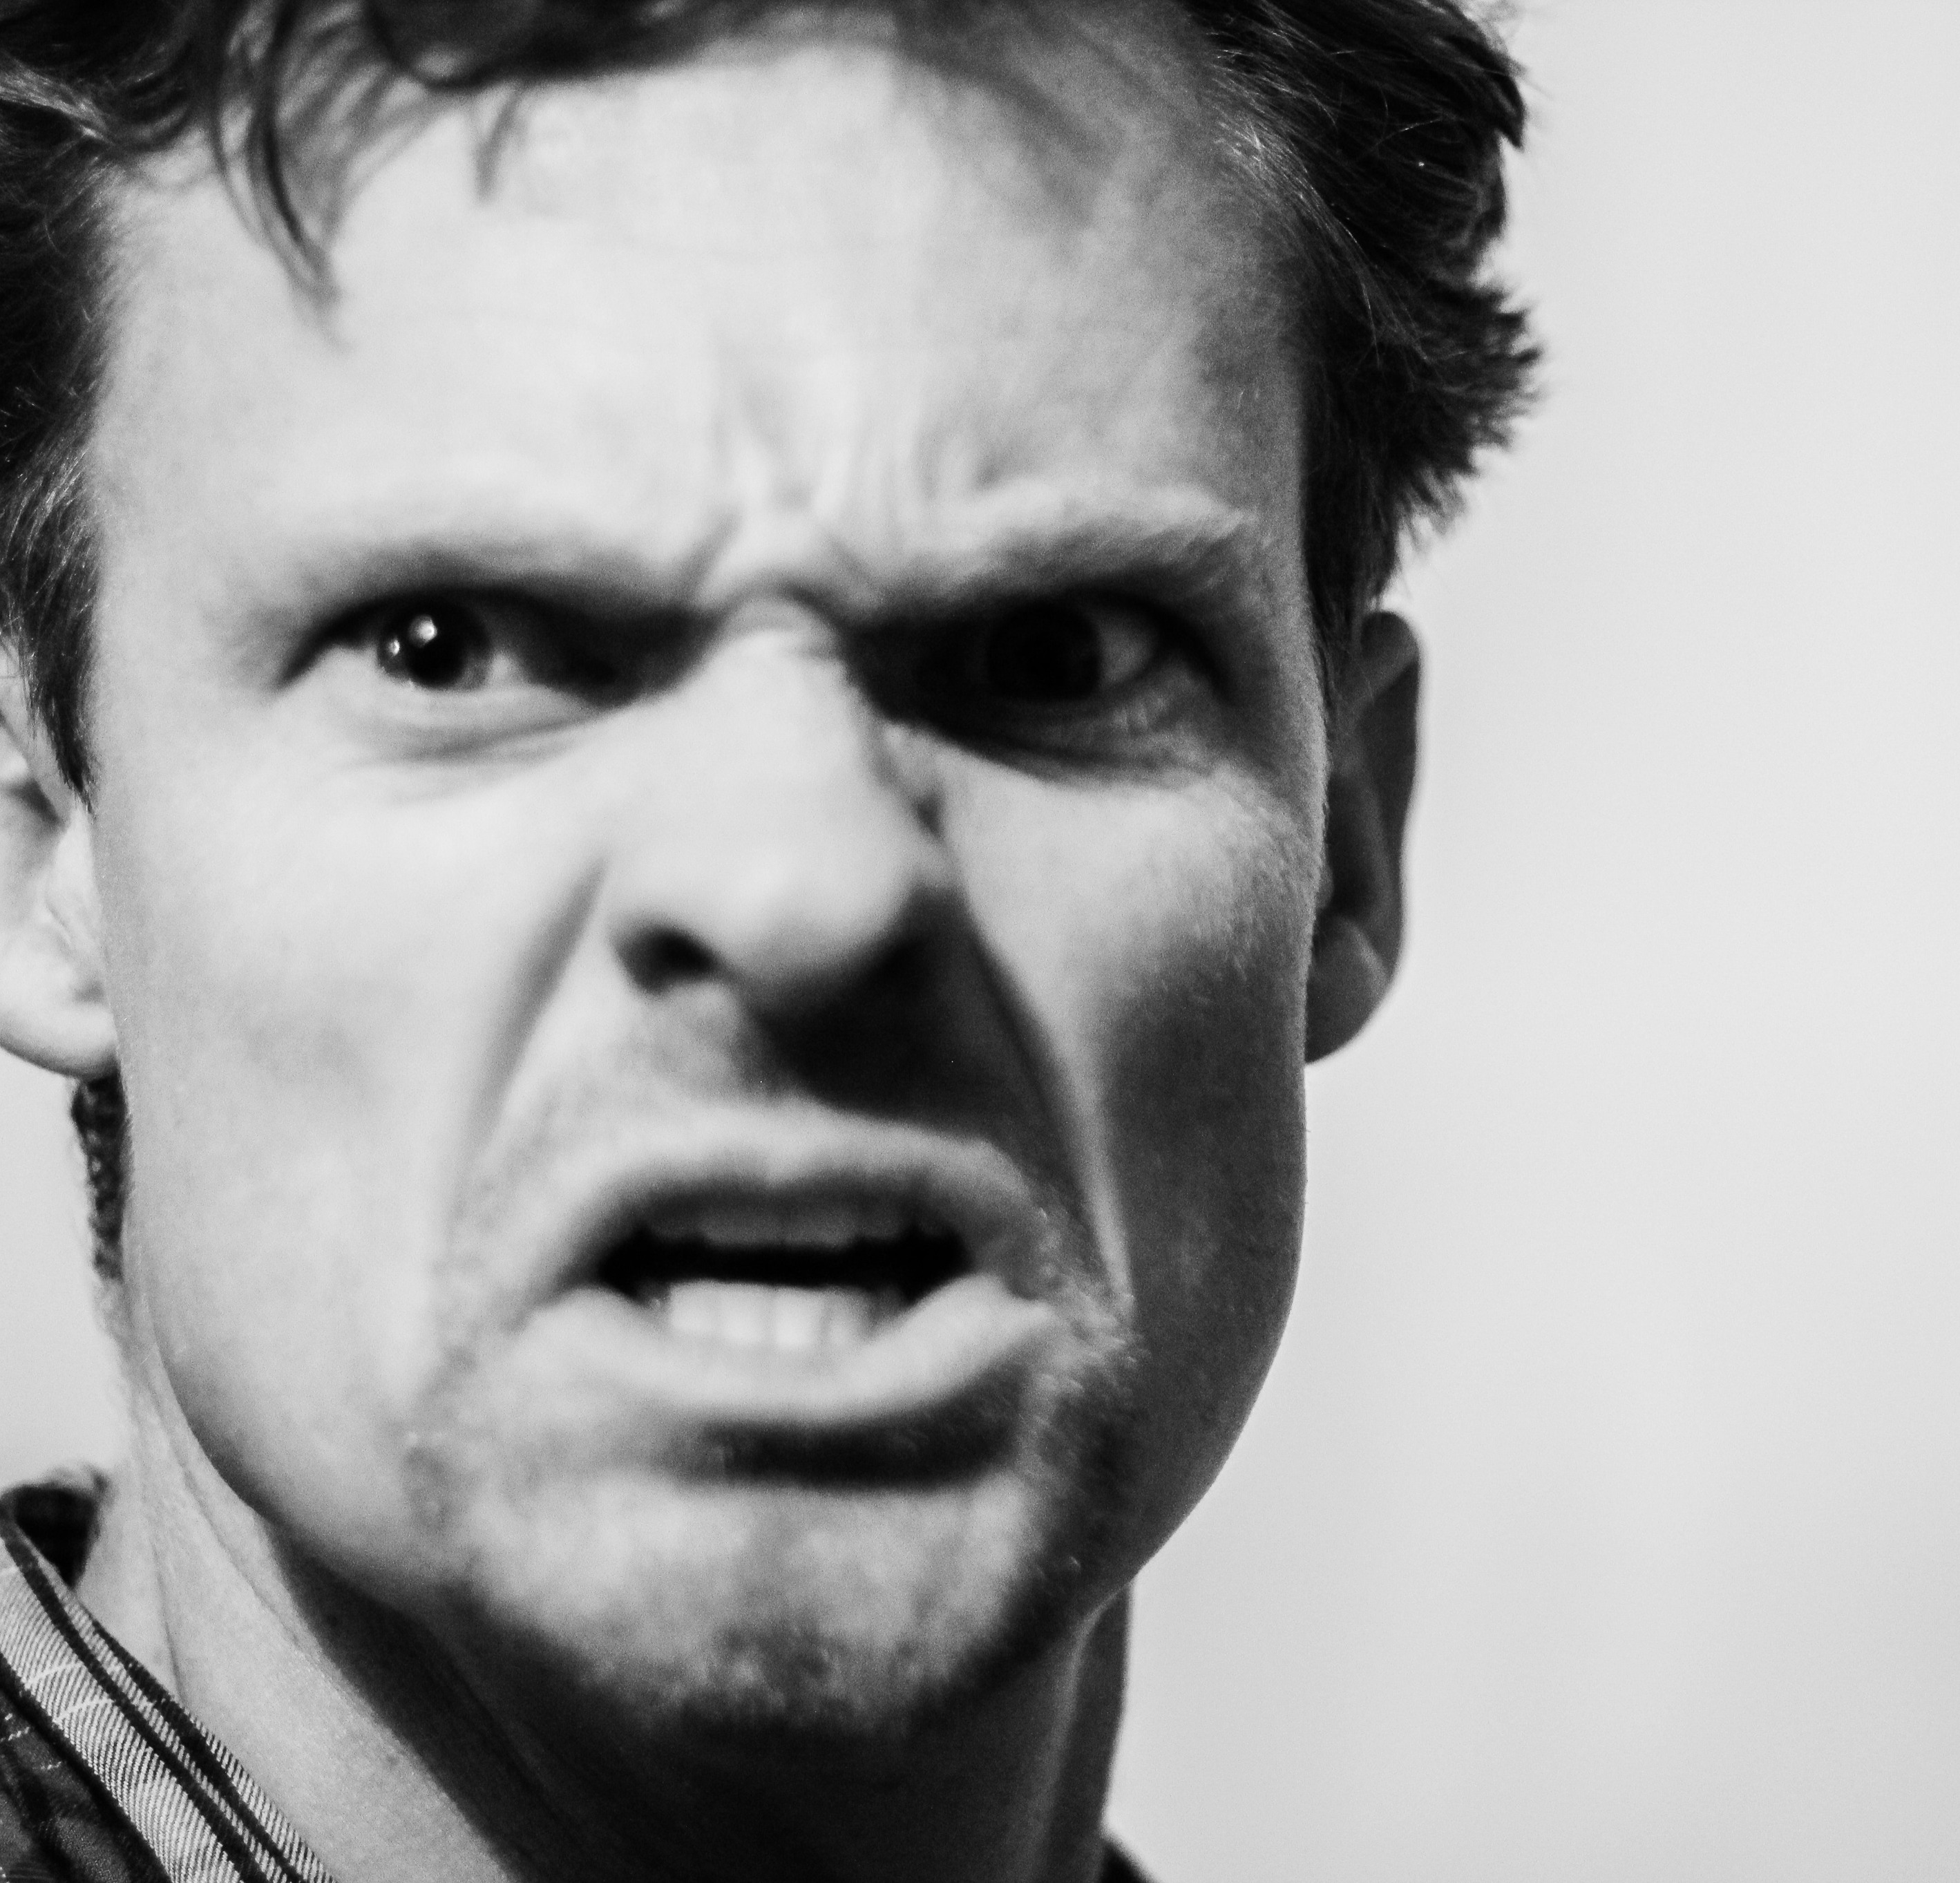 https://www.pexels.com/photo/angry-angry-man-man-634020/